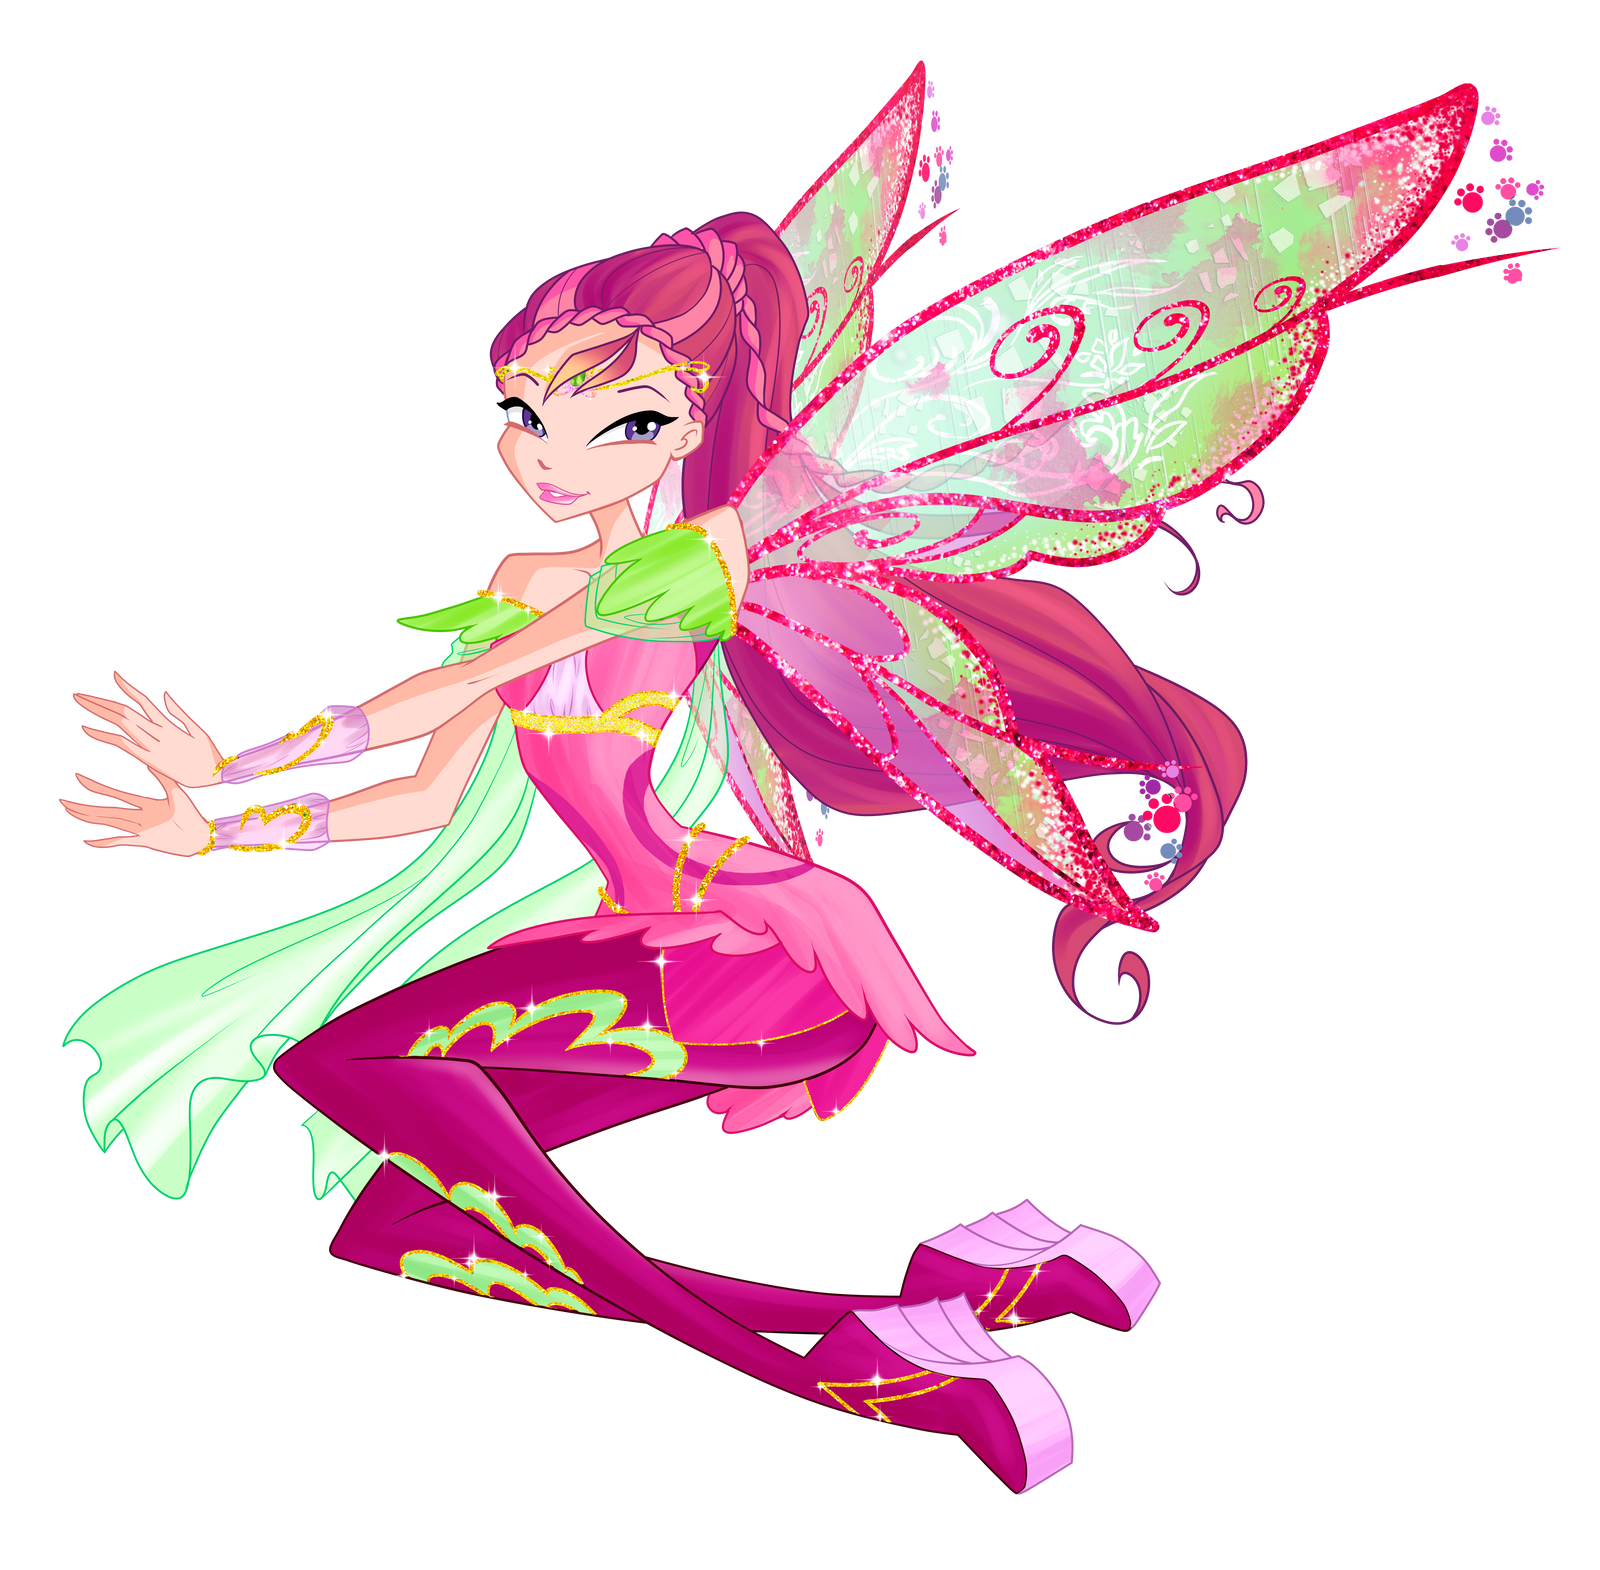 Winx club 6 season roxy bloomix by forgotten by gods on - Winx magic bloomix ...